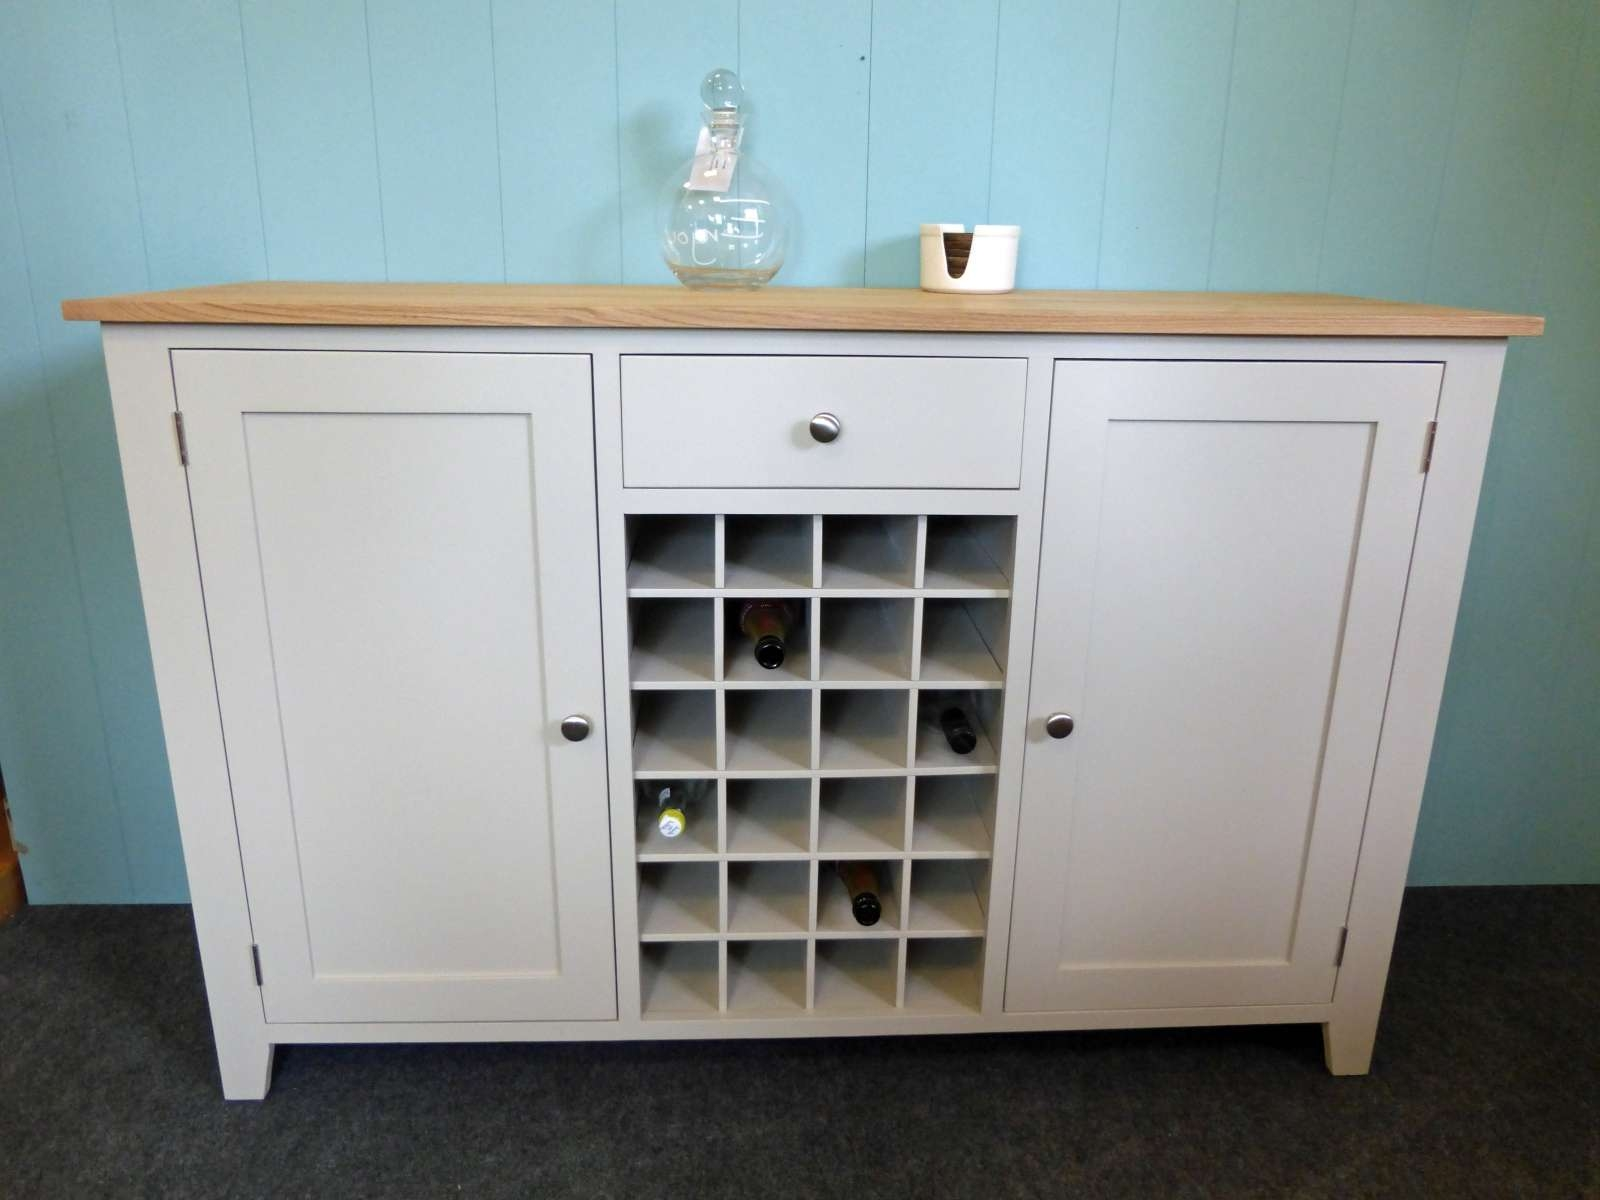 Painted Shaker Style Sideboard With Wine Rack – Solid Wood In Bespoke Sideboards (View 14 of 20)